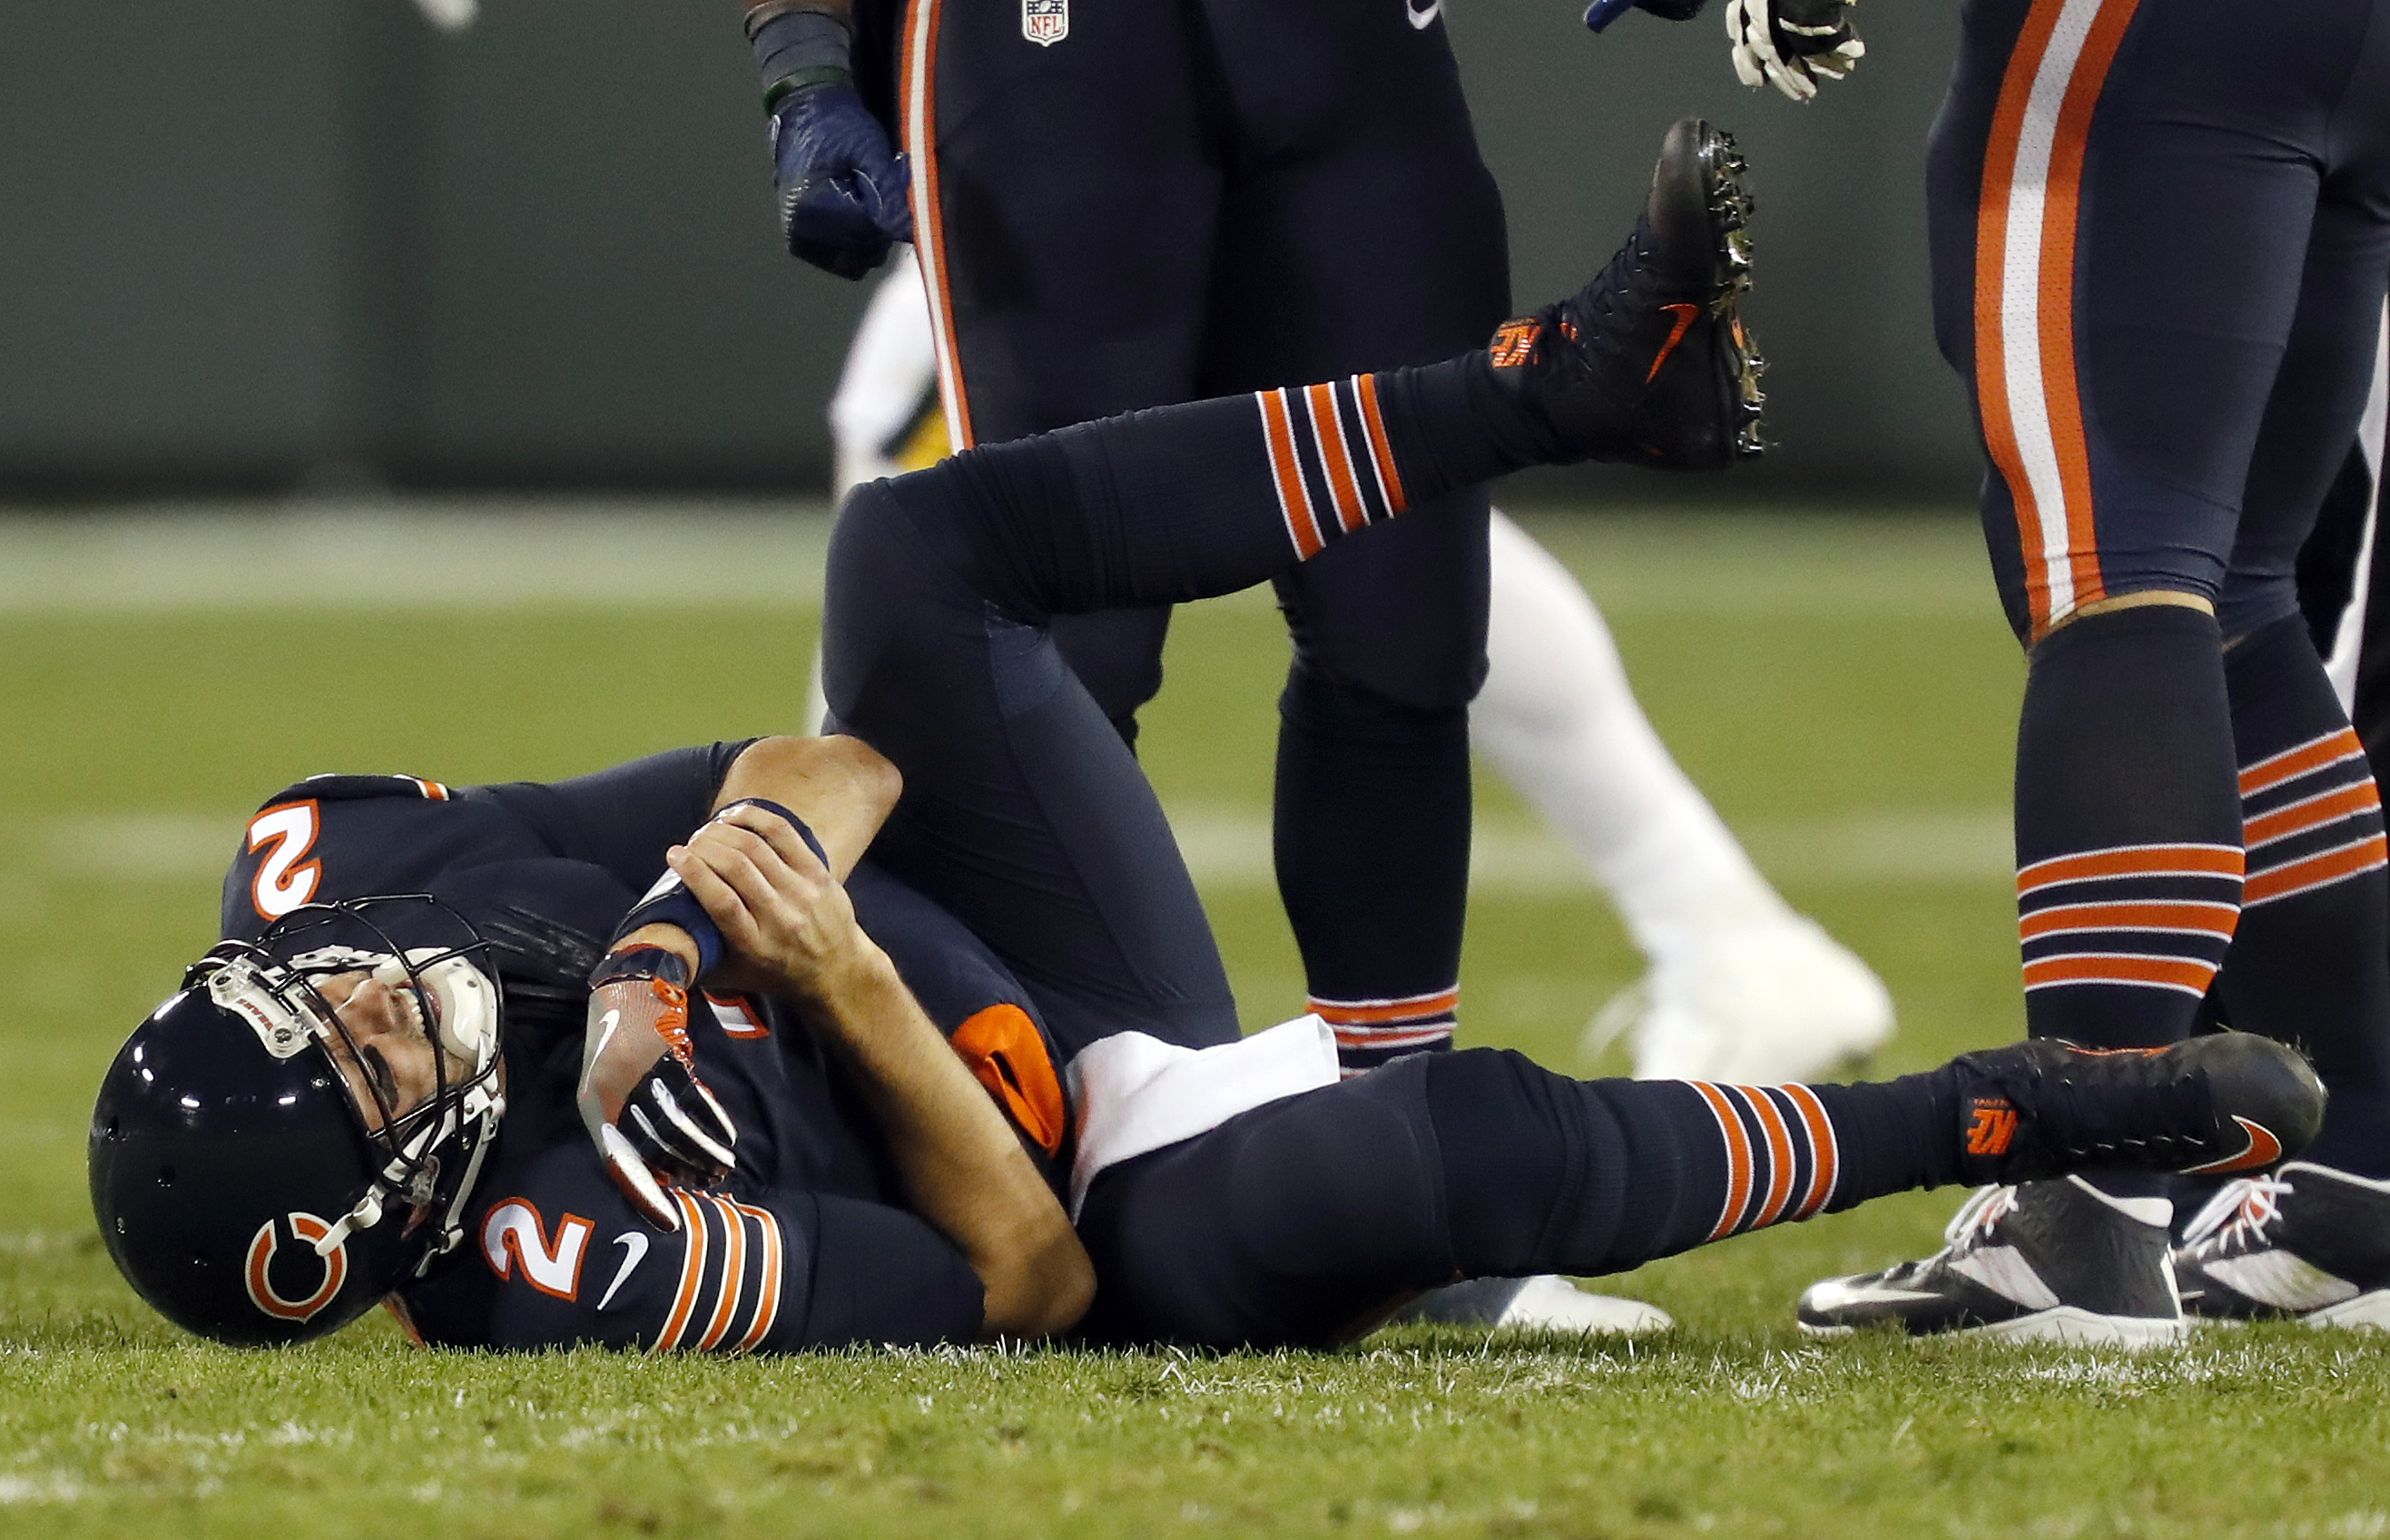 Chicago Bears quarterback Brian Hoyer (2) holds his arm after getting tackled between Green Bay Packers outside linebacker Clay Matthews (52) and outside linebacker Julius Peppers (56) as he throws the ball during the first half of an NFL football game, T